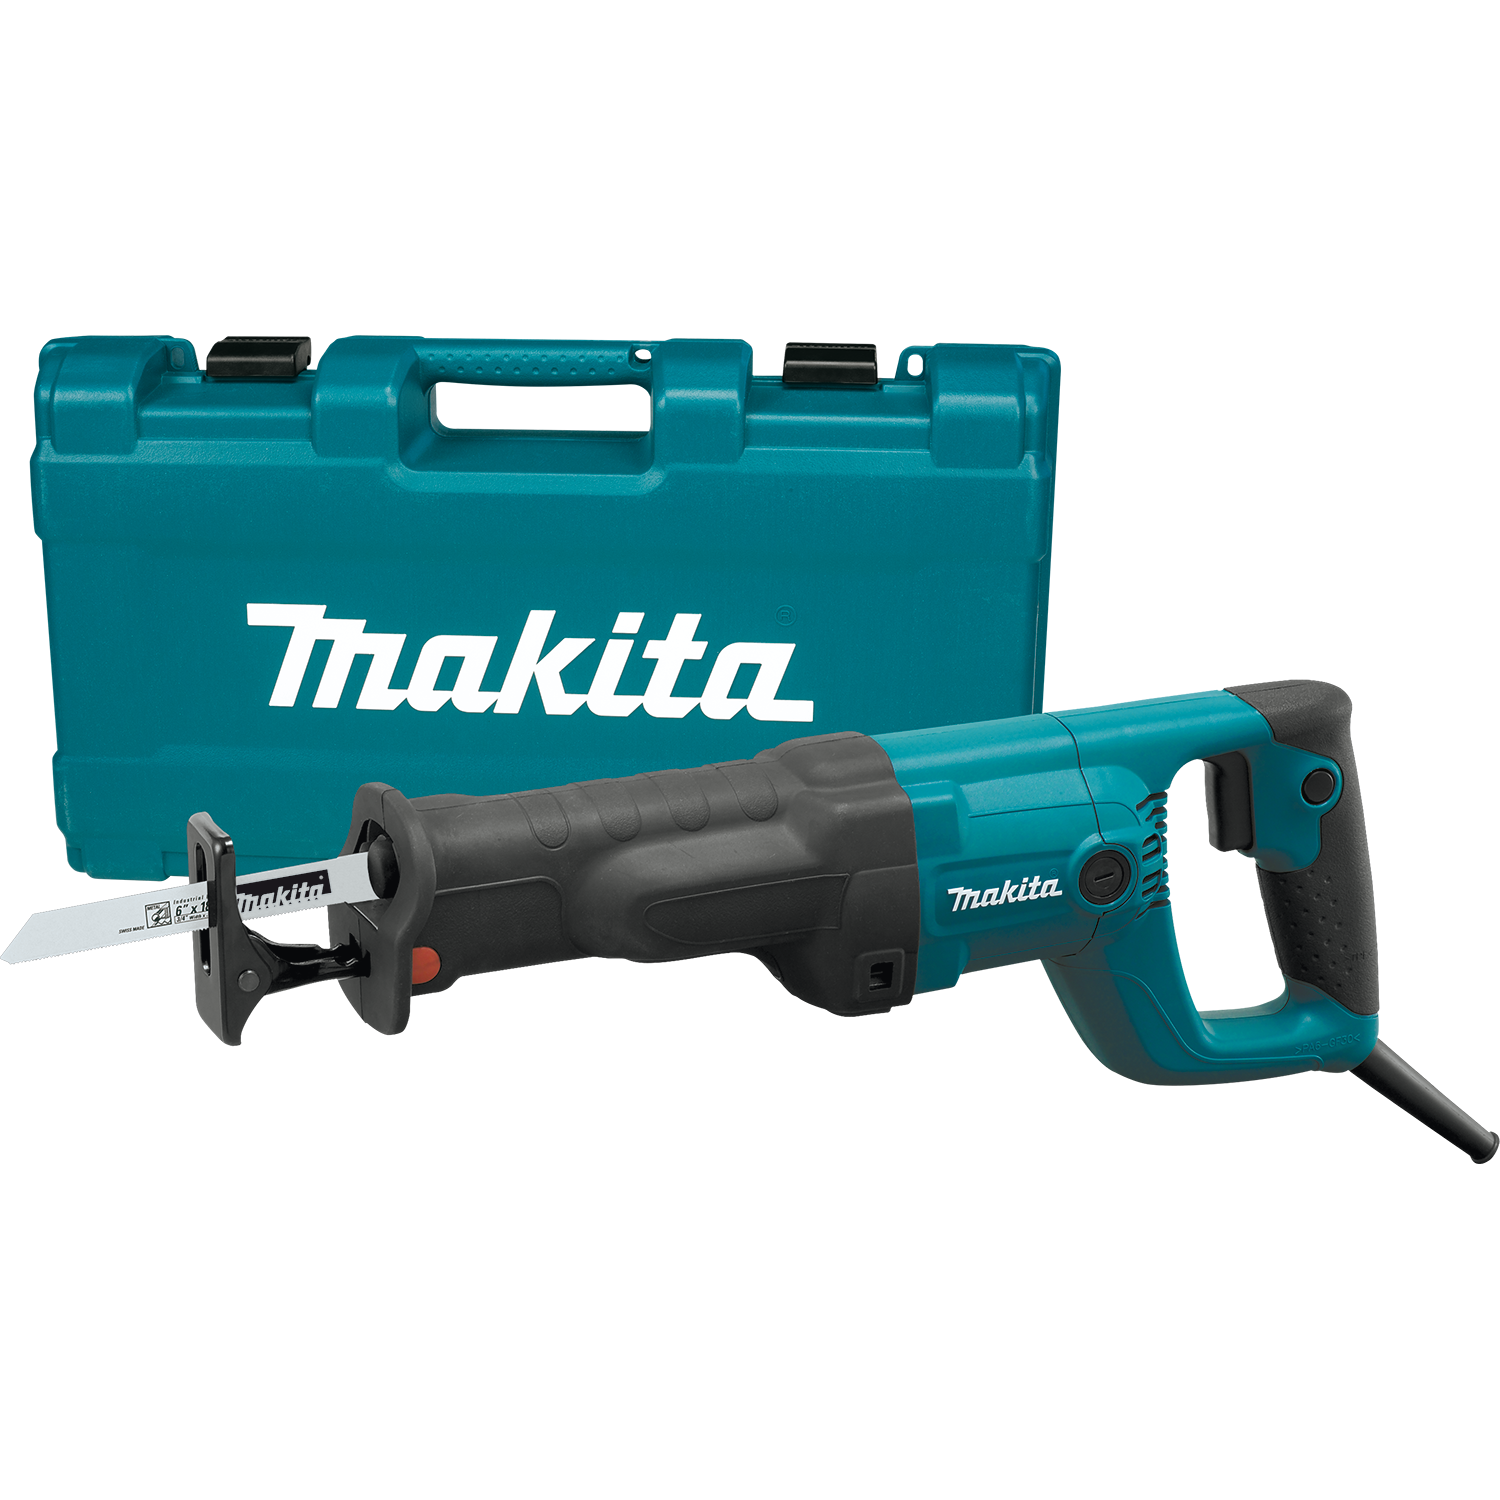 Makita usa product details jr3050t jr3050t greentooth Gallery